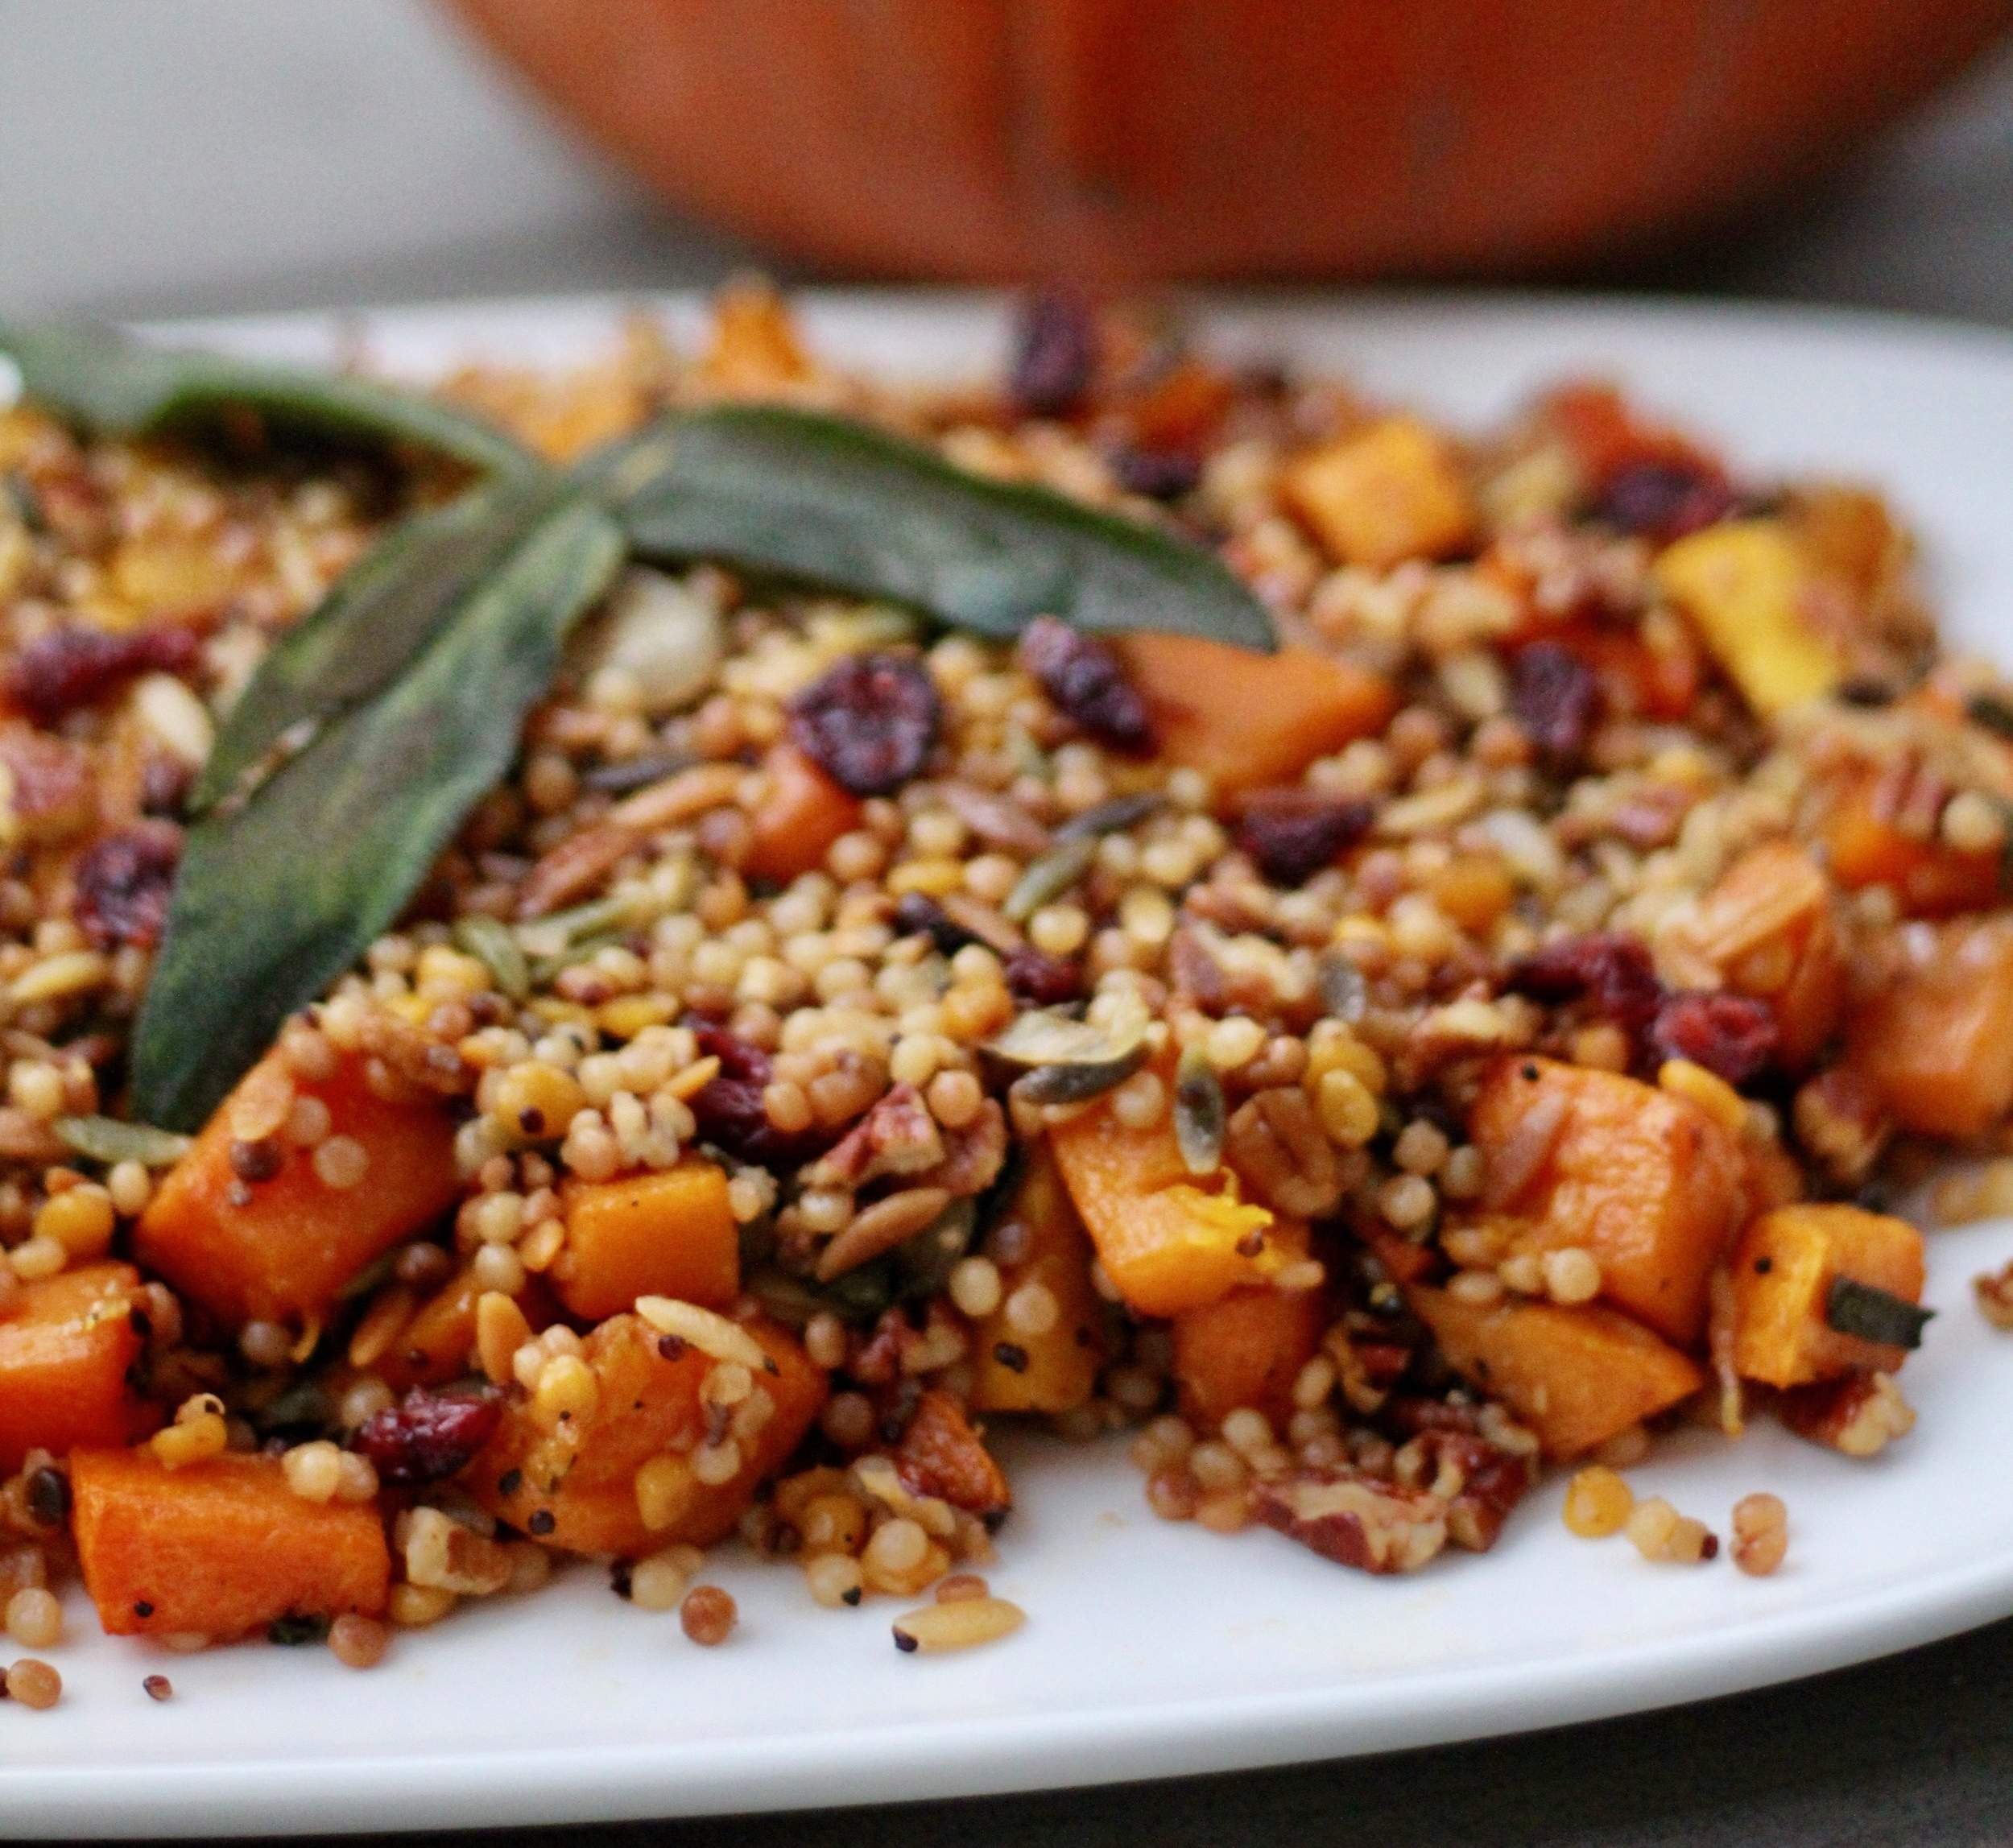 Grains with Roasted Butternut Squash